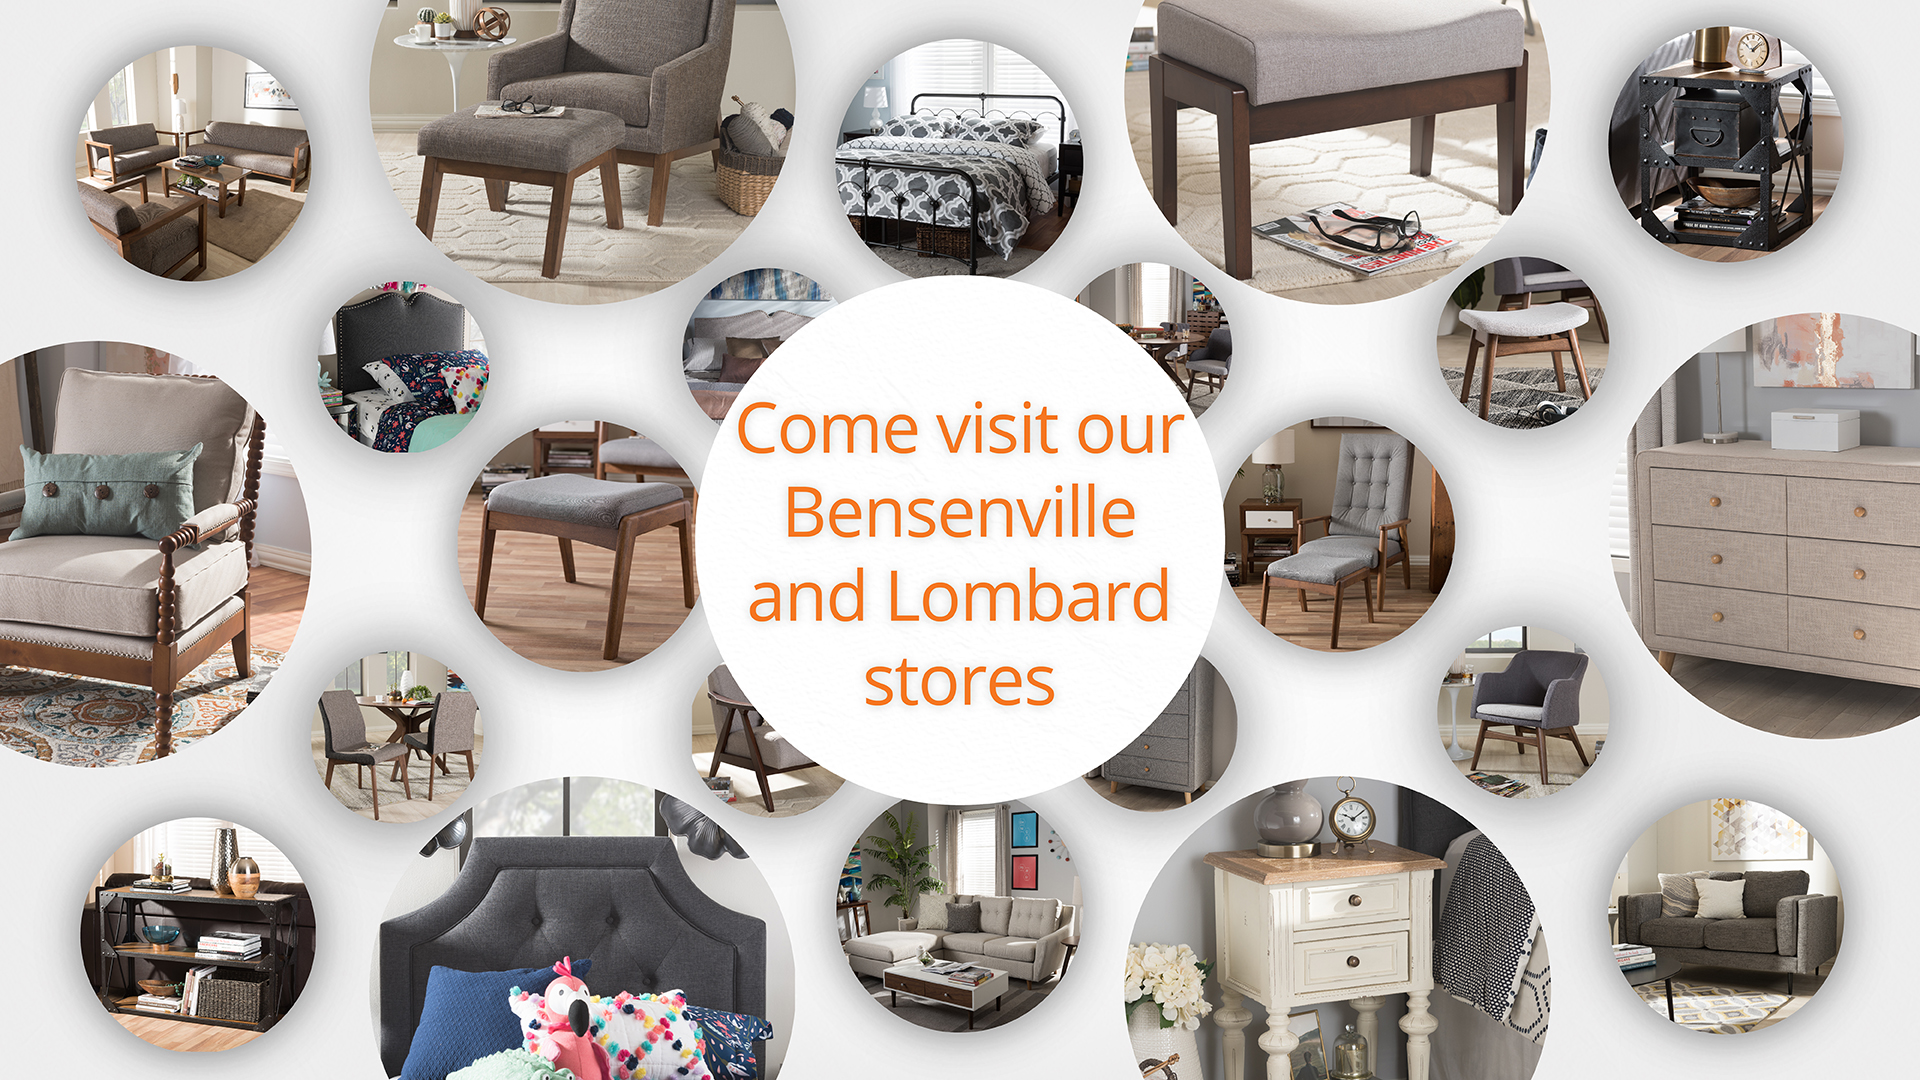 furniture outlet chicago furniture store mattress store furniture at low prices you don t want to miss sign up today for future promotional deals coupons and latest trends